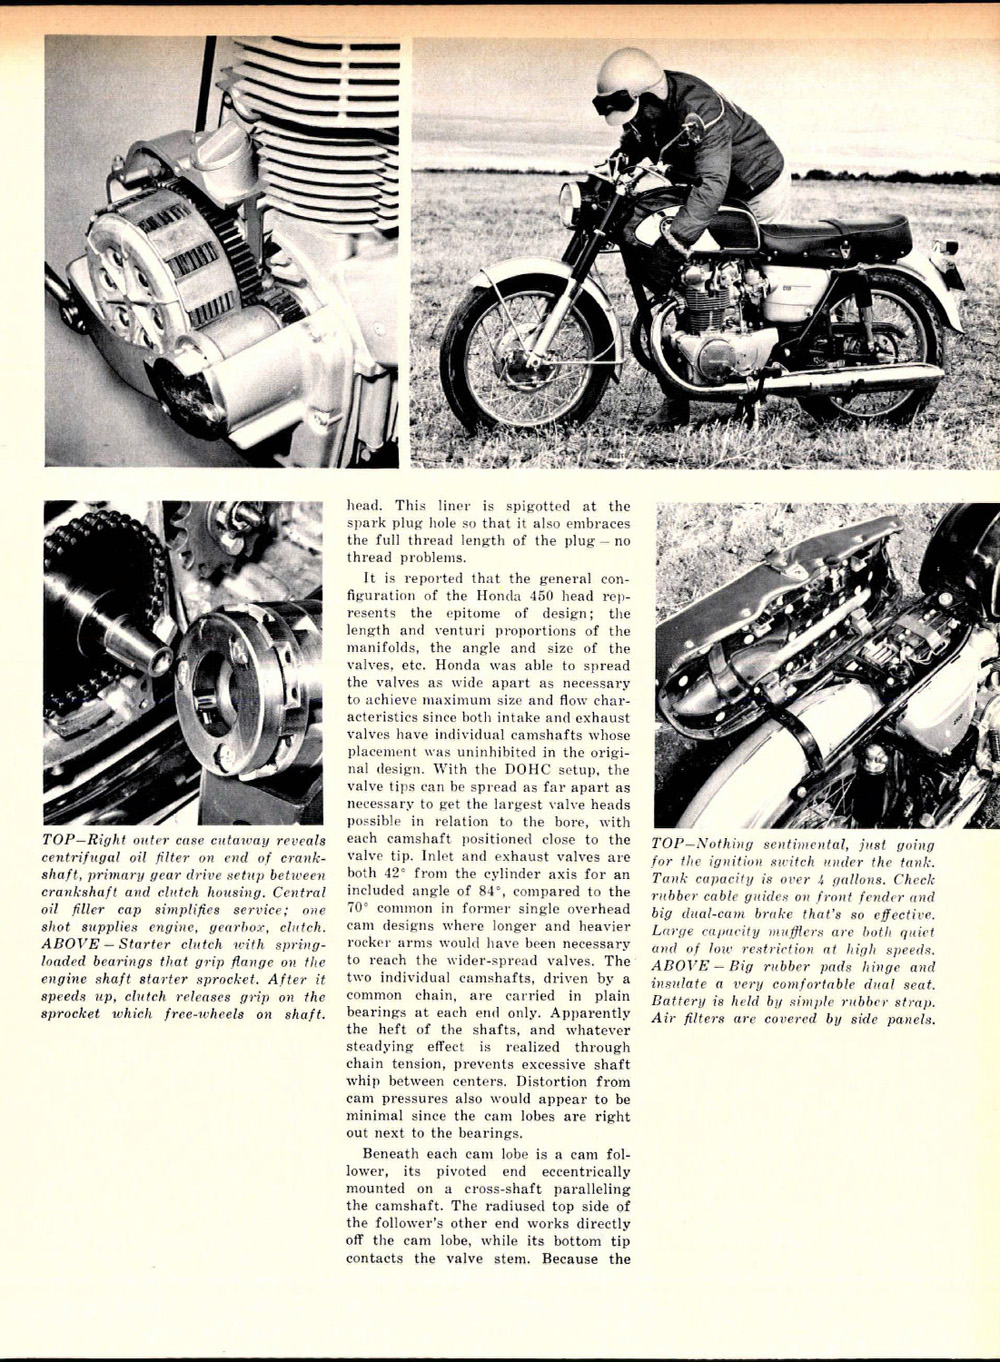 Honda 450 Engine tech article 05.jpg